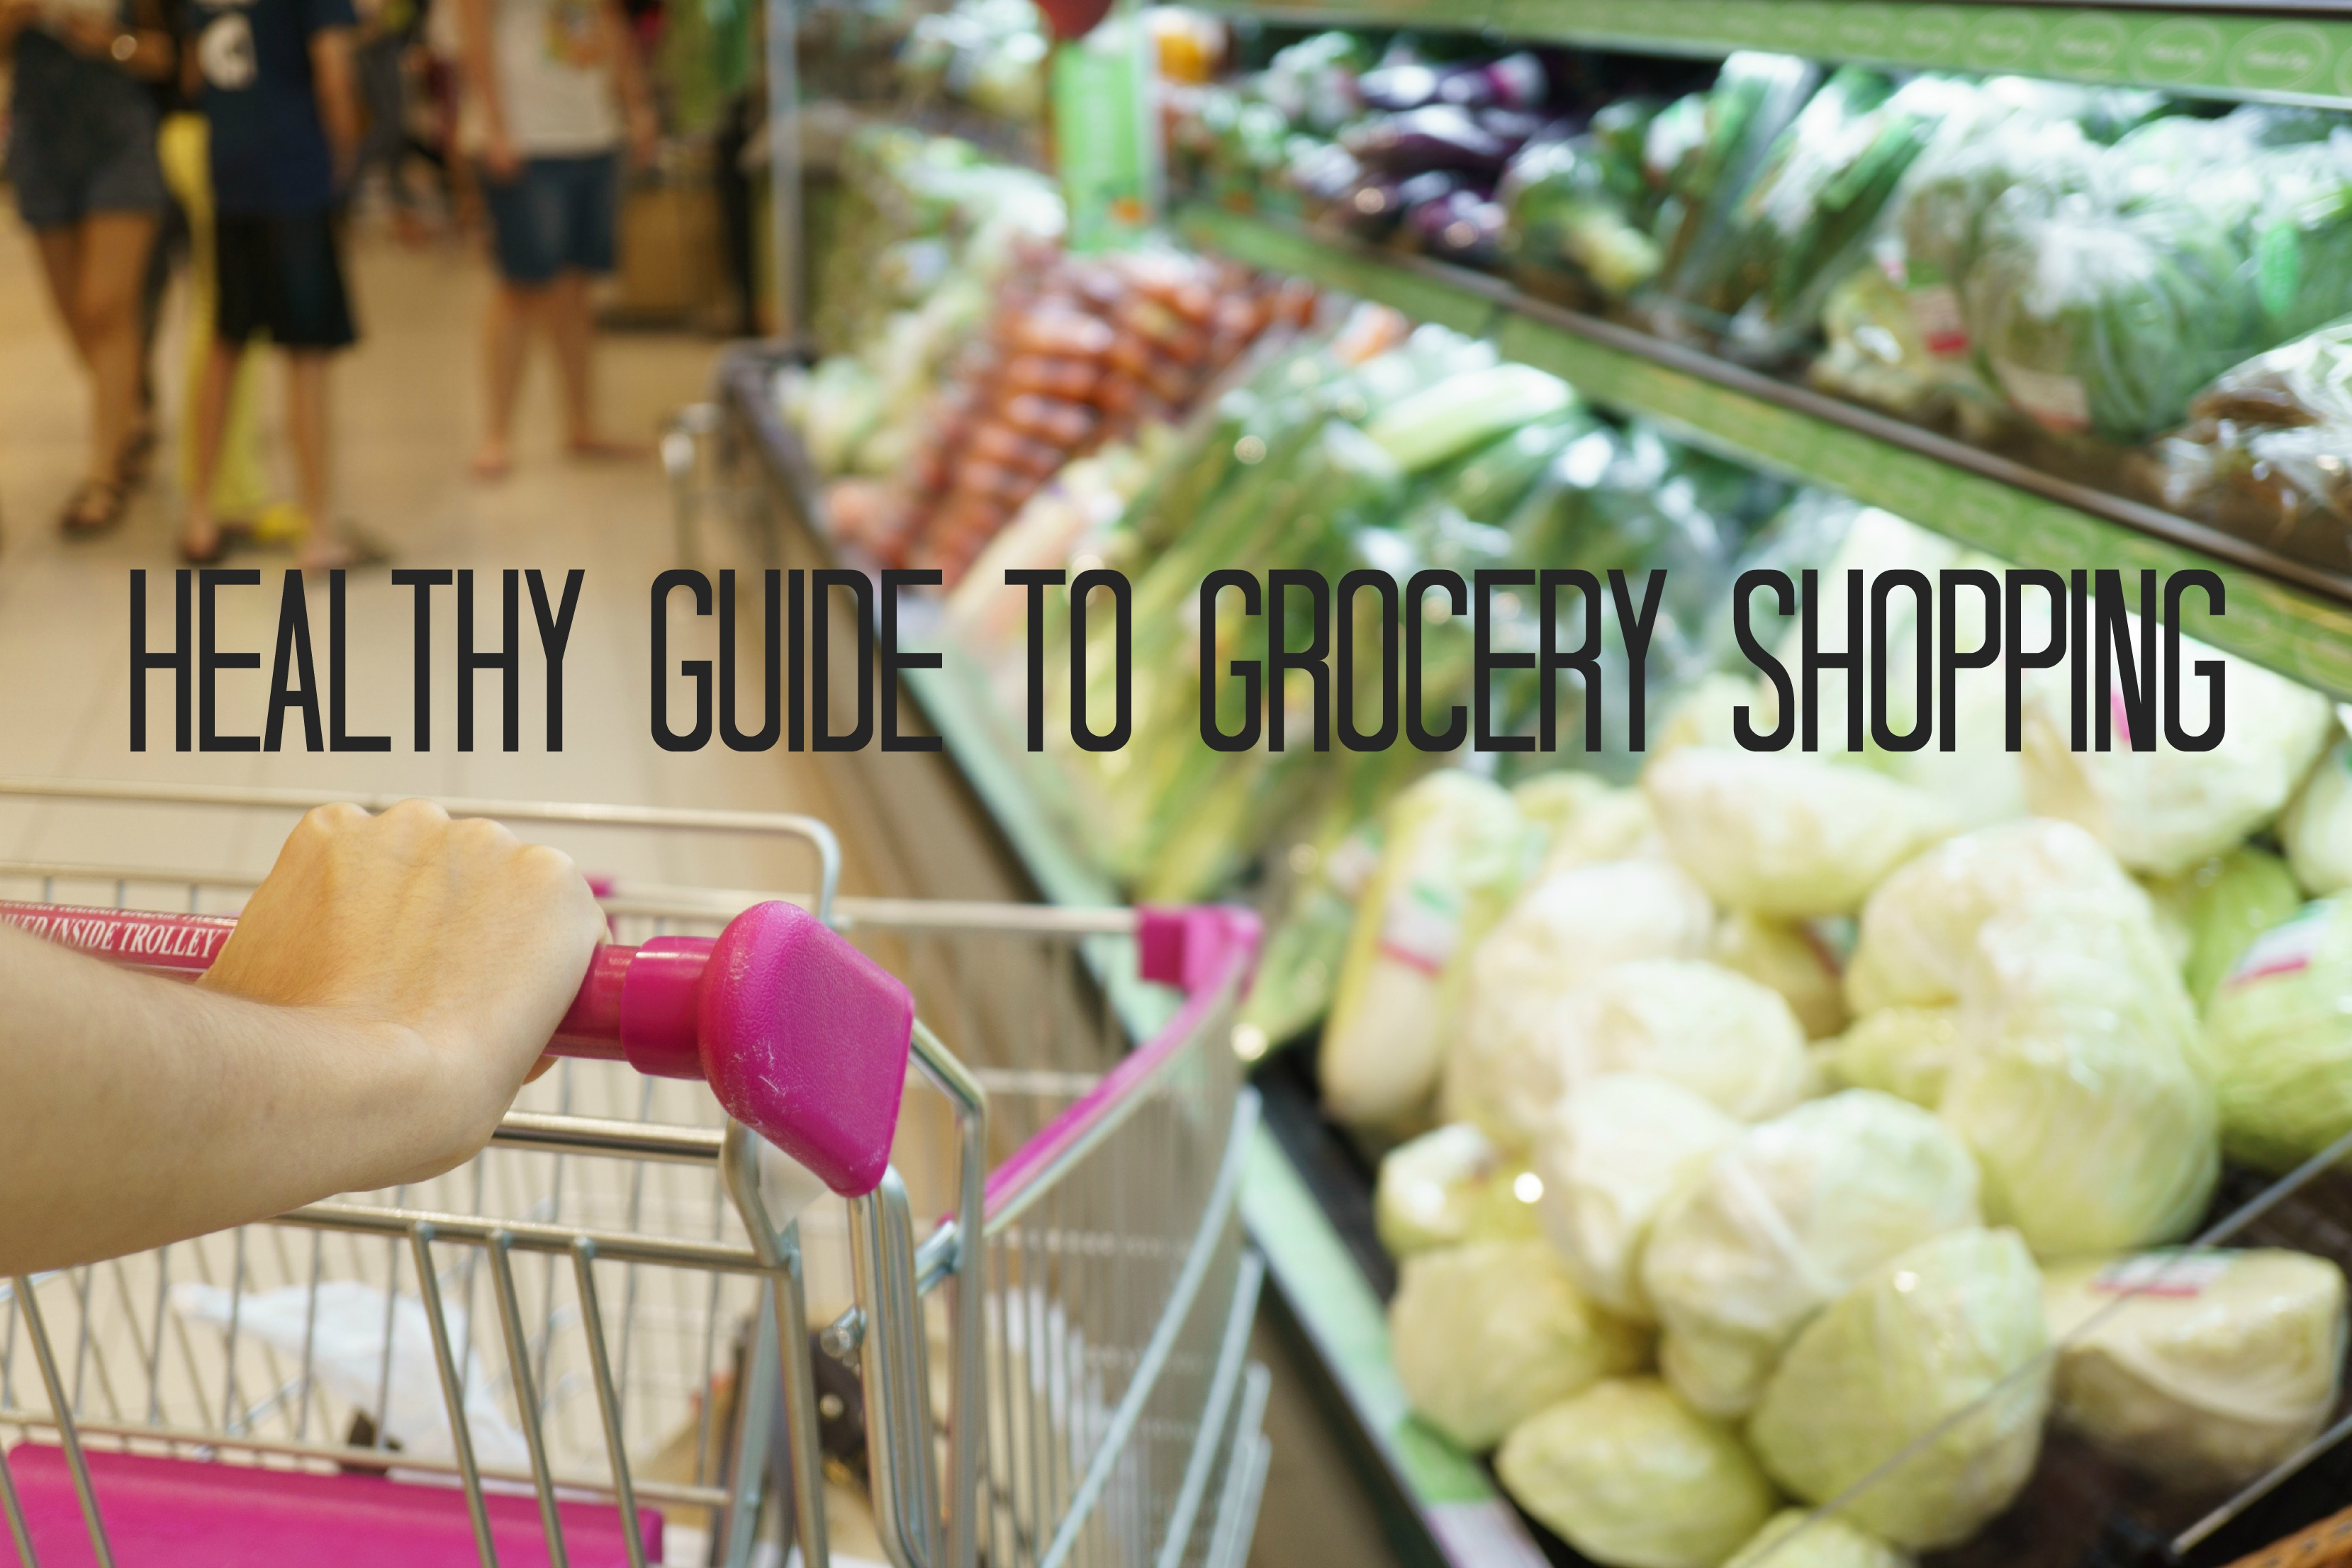 Healthy Guide to Grocery Shopping